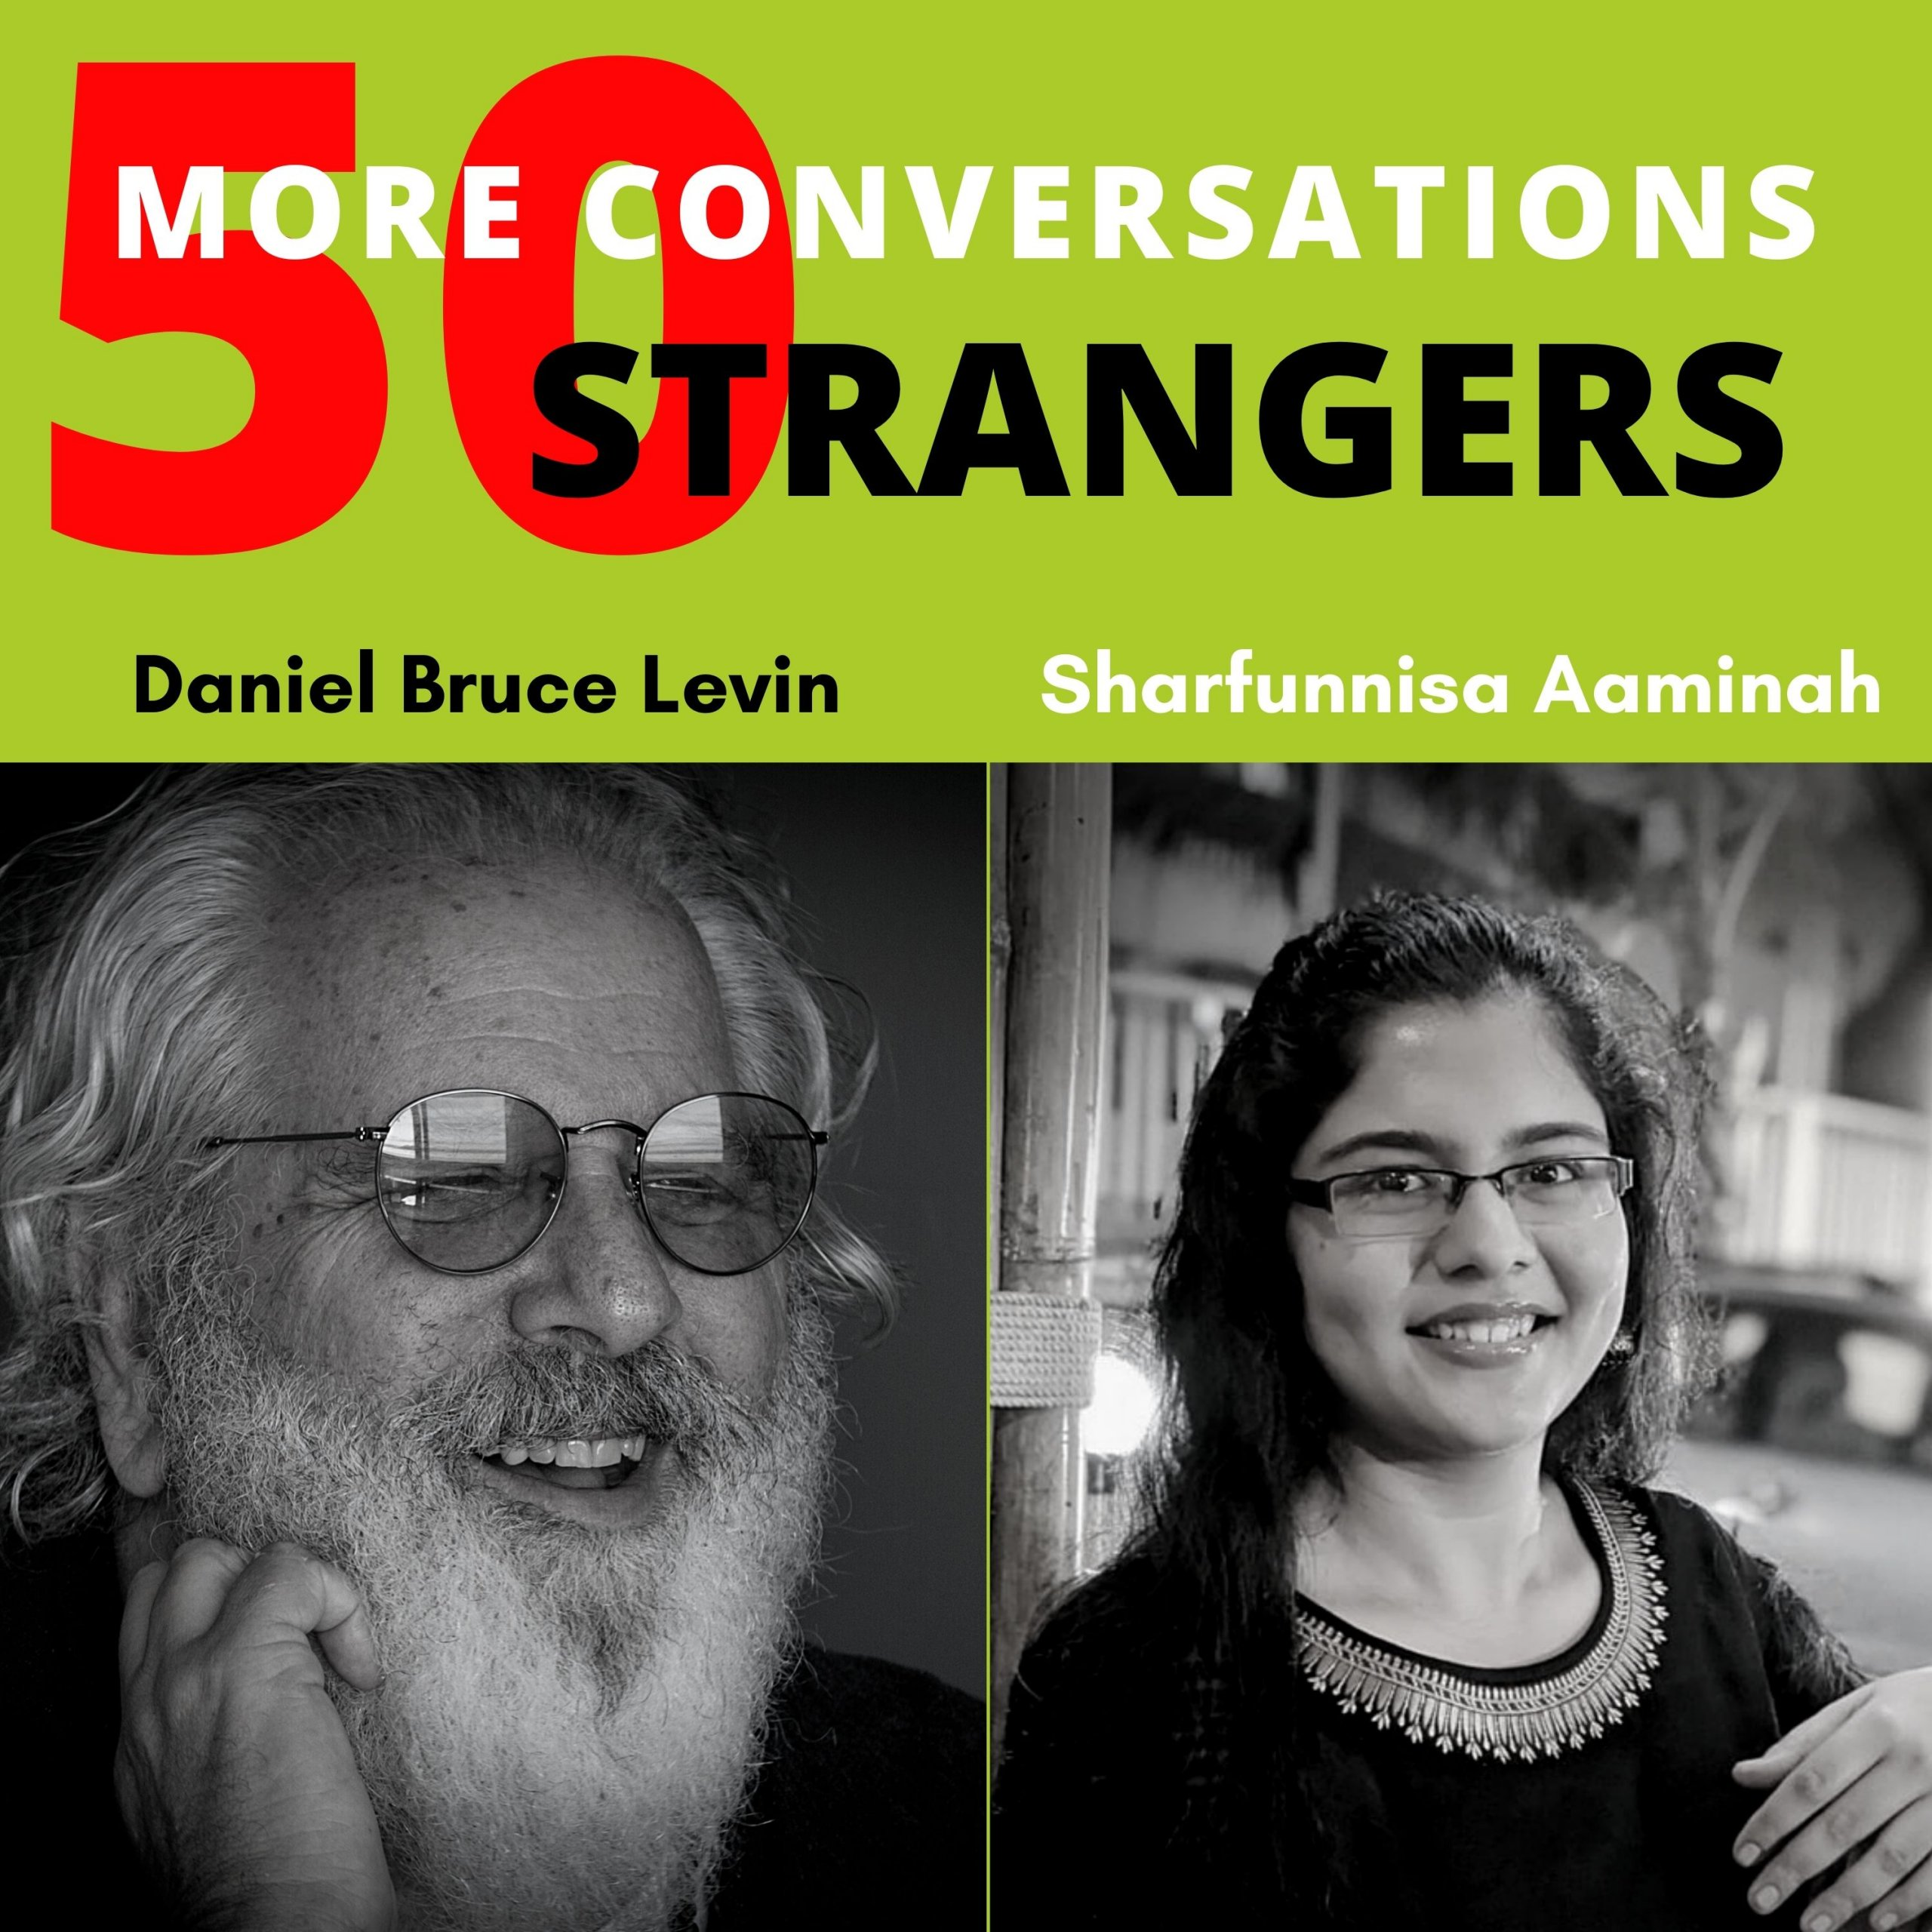 50 More Conversations with 50 More Strangers with Sharfunnisa Aaminah